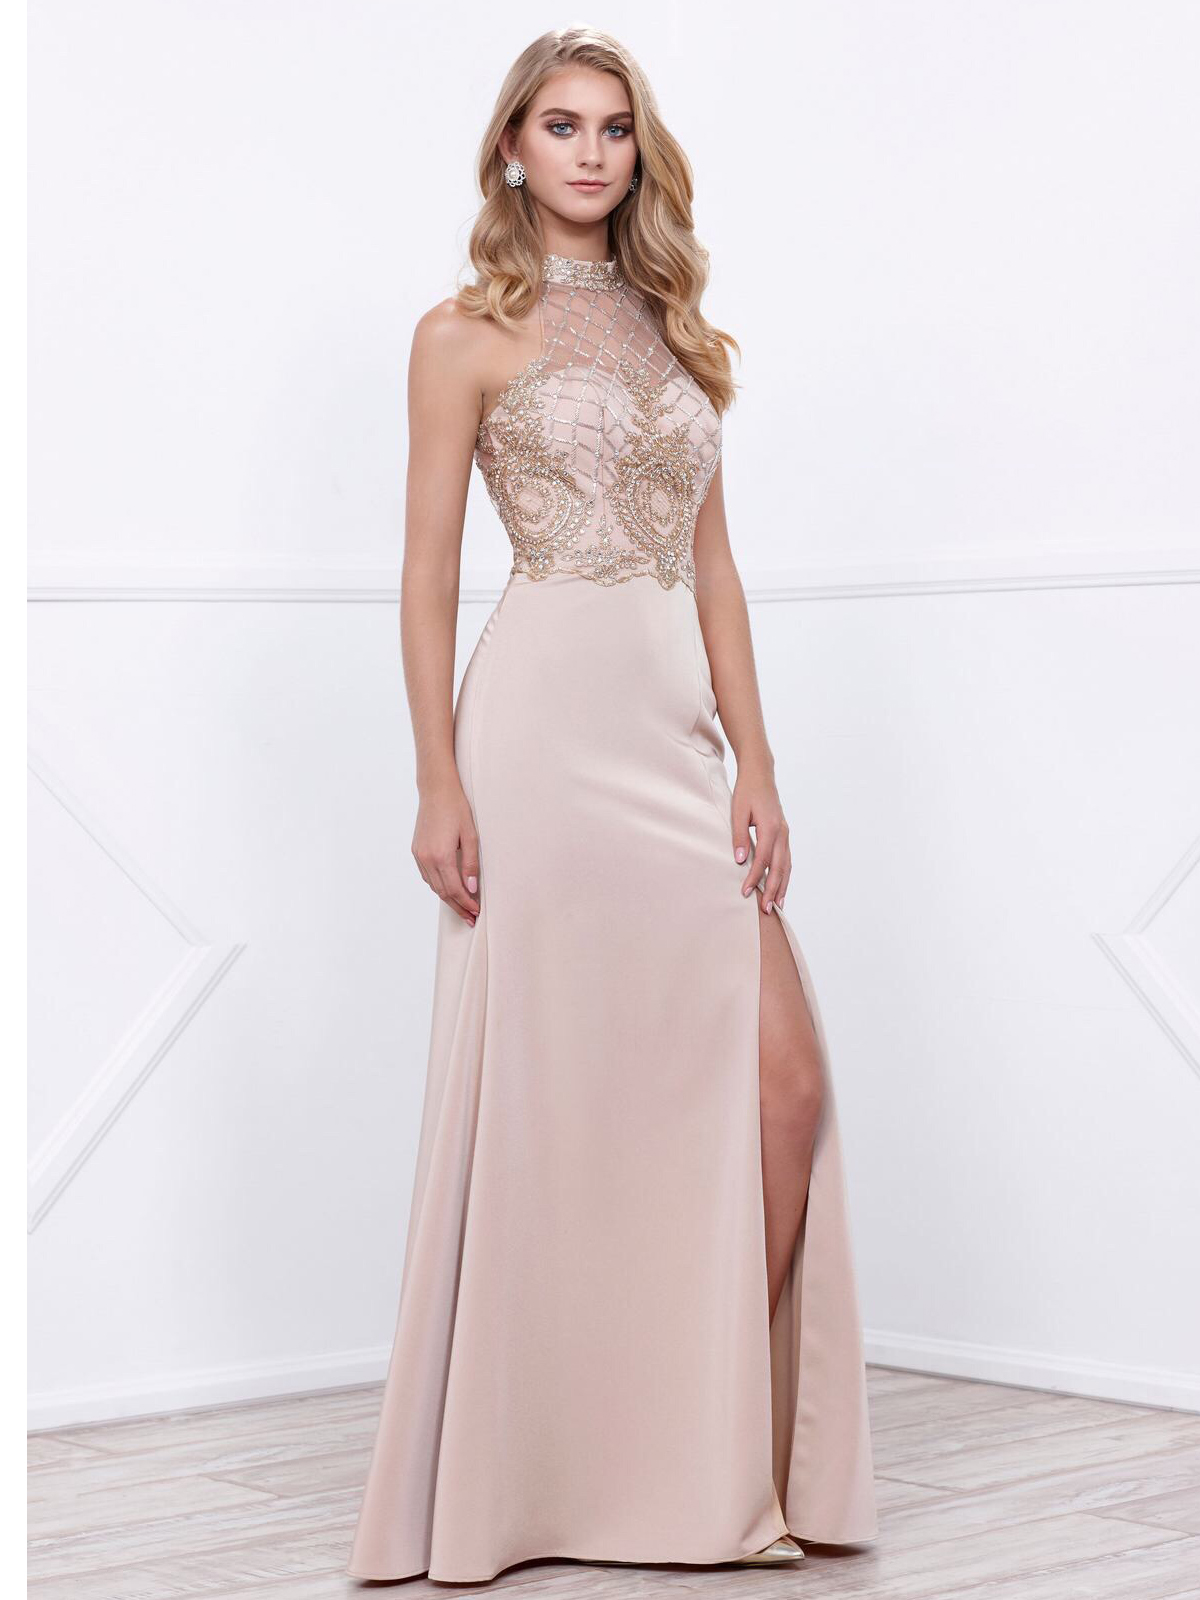 Sleeveless Long Prom Dress With Open-Back | Sung Boutique L.A.